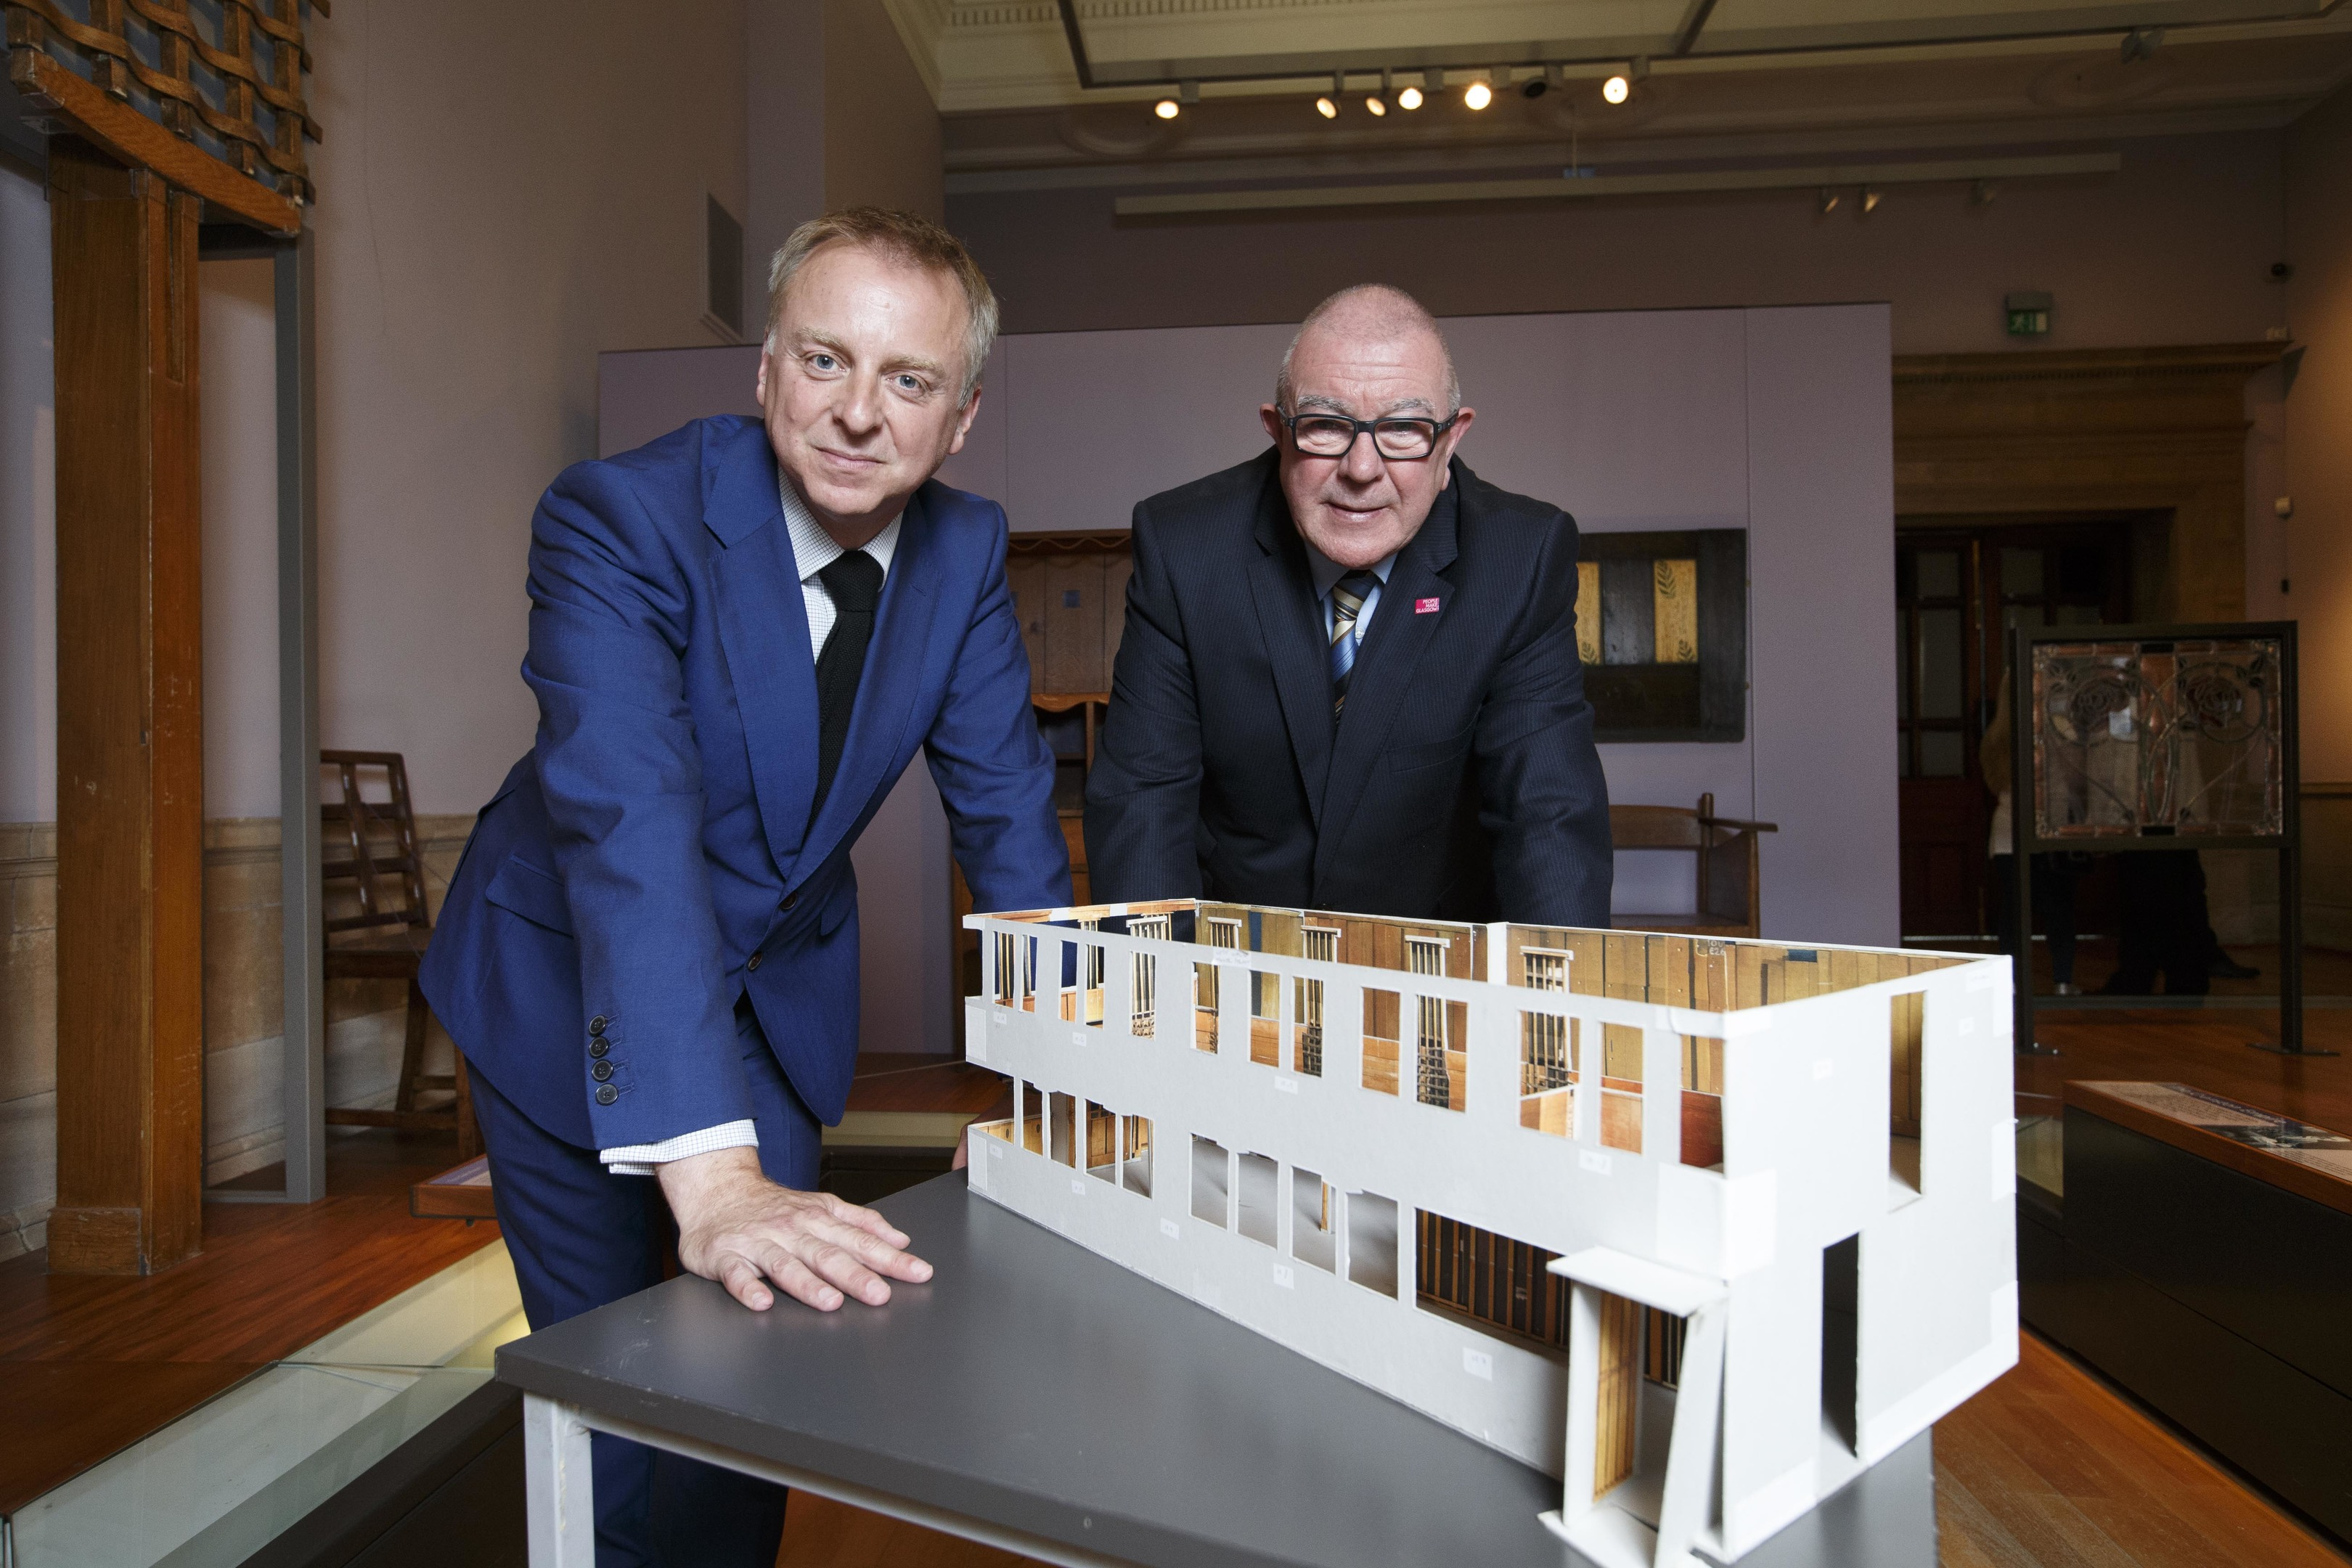 Philip Long, Director (V&A Dundee) and Councillor Archie Graham (Chair of Glasgow Life) view the scale model